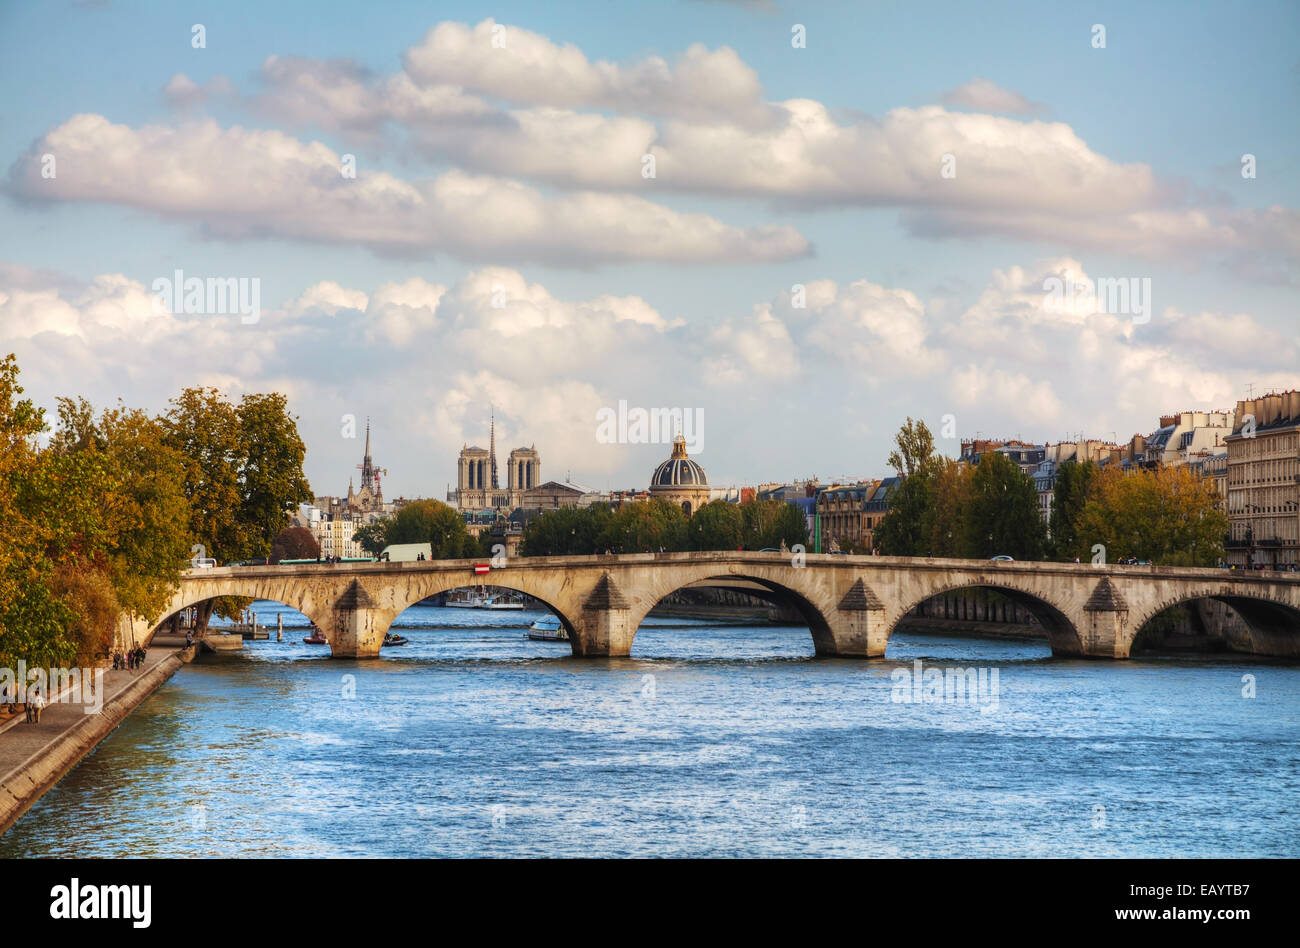 Cityscape of Paris, France on a cloudy day - Stock Image